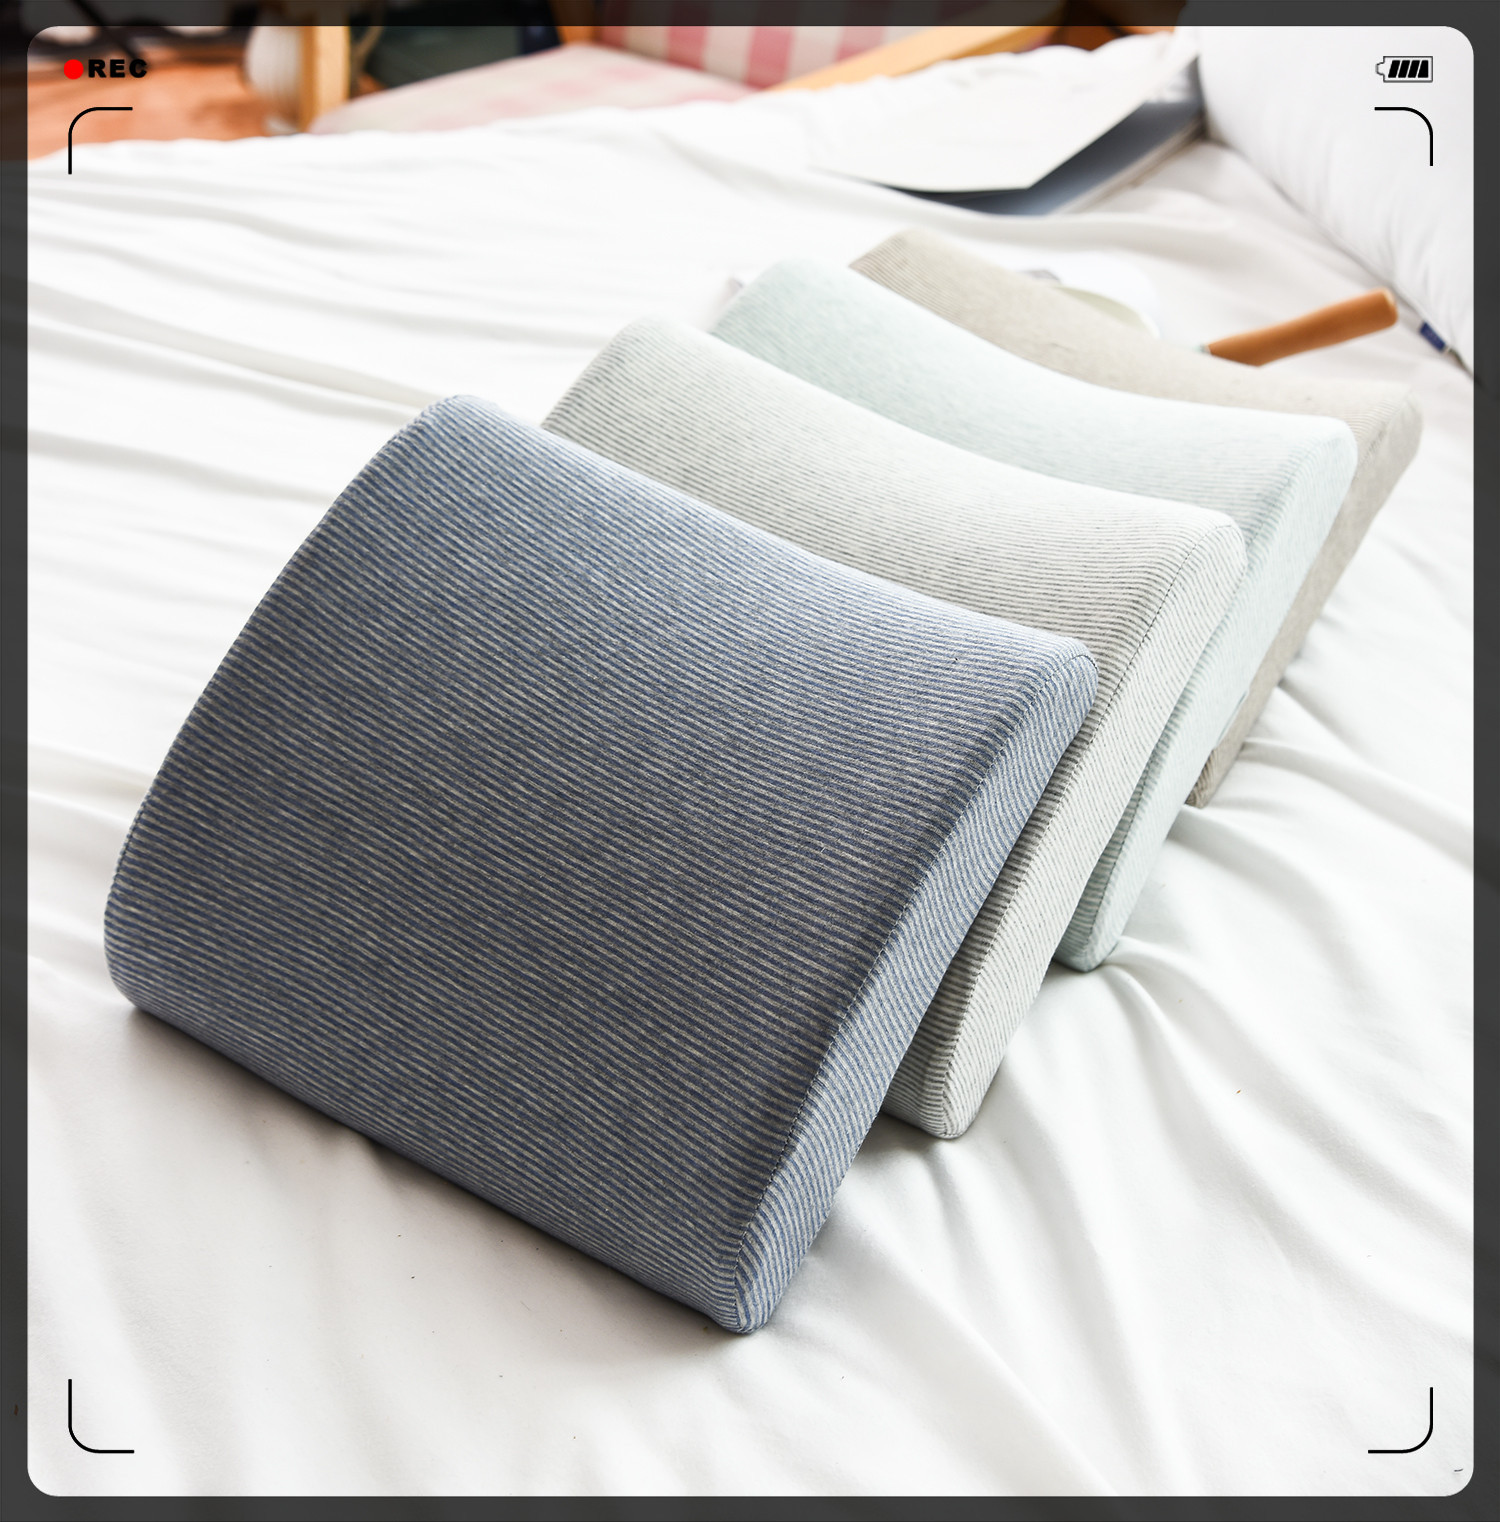 Good Memory Foam Pillow for Comfortable Feeling While Travelling